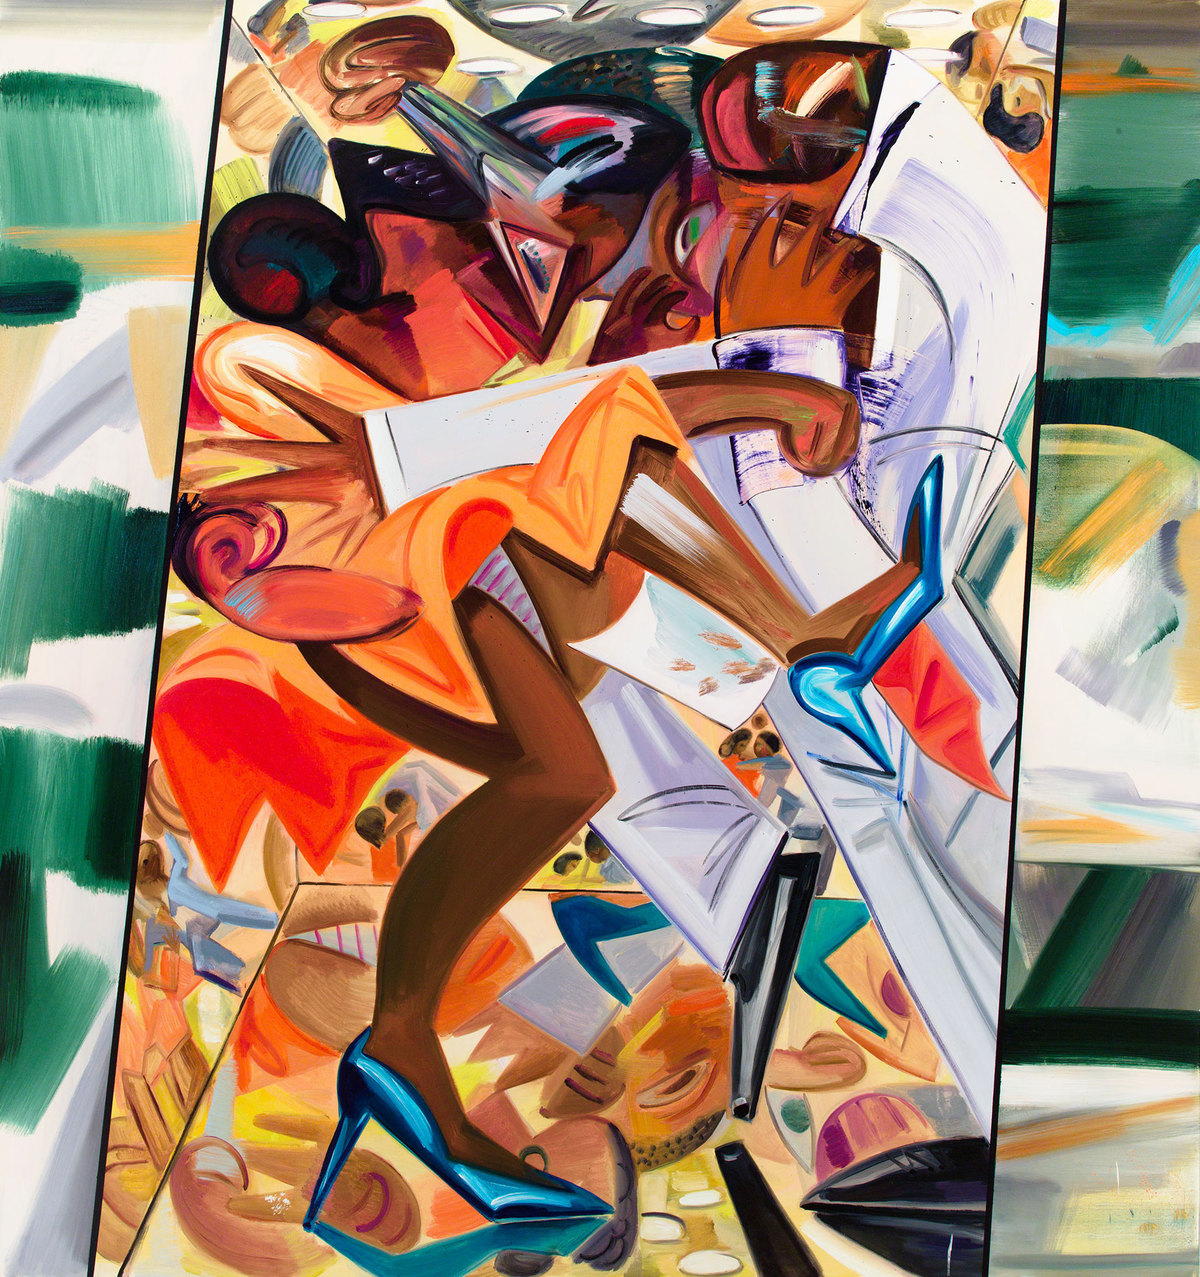 Dana Schutz, Fight in an Elevator, 2015, Whitney Biennial 2017